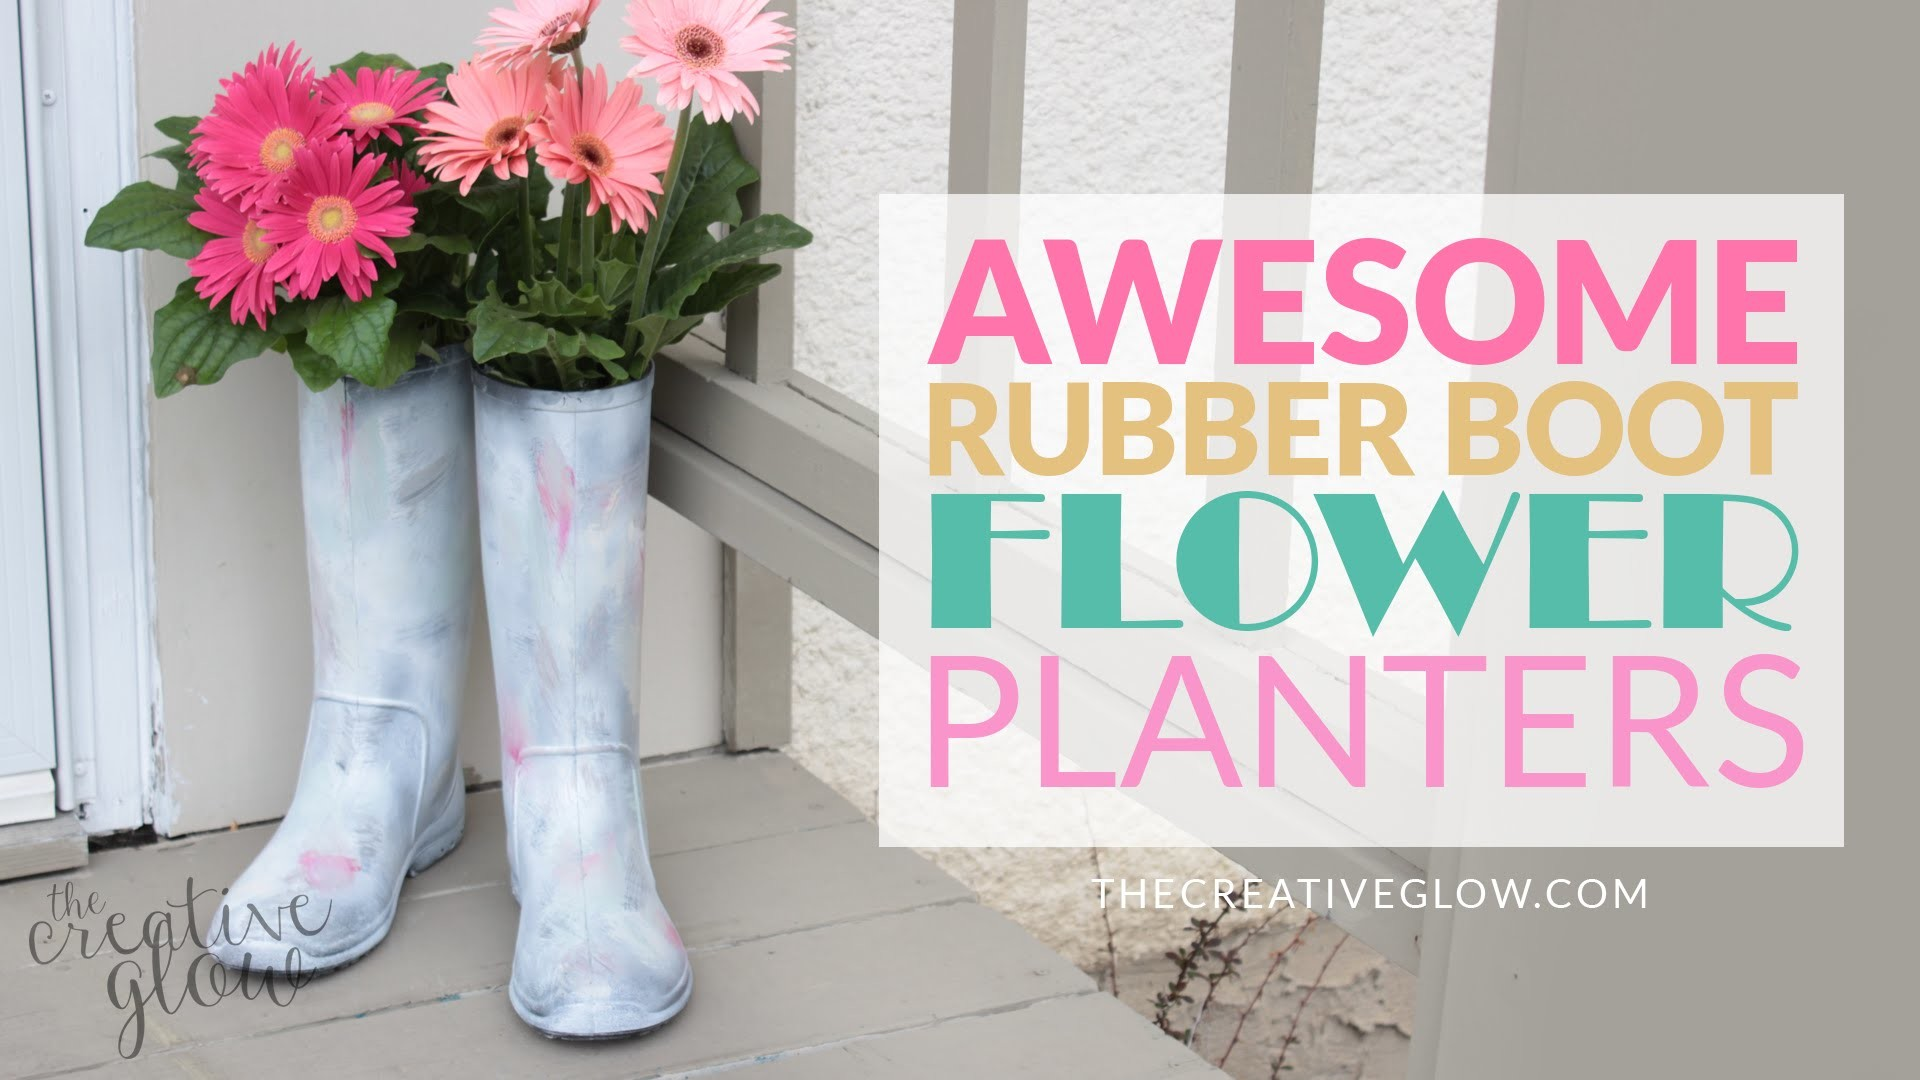 DIY Rubber Boot Flower Planters - Fun, Easy & Quick